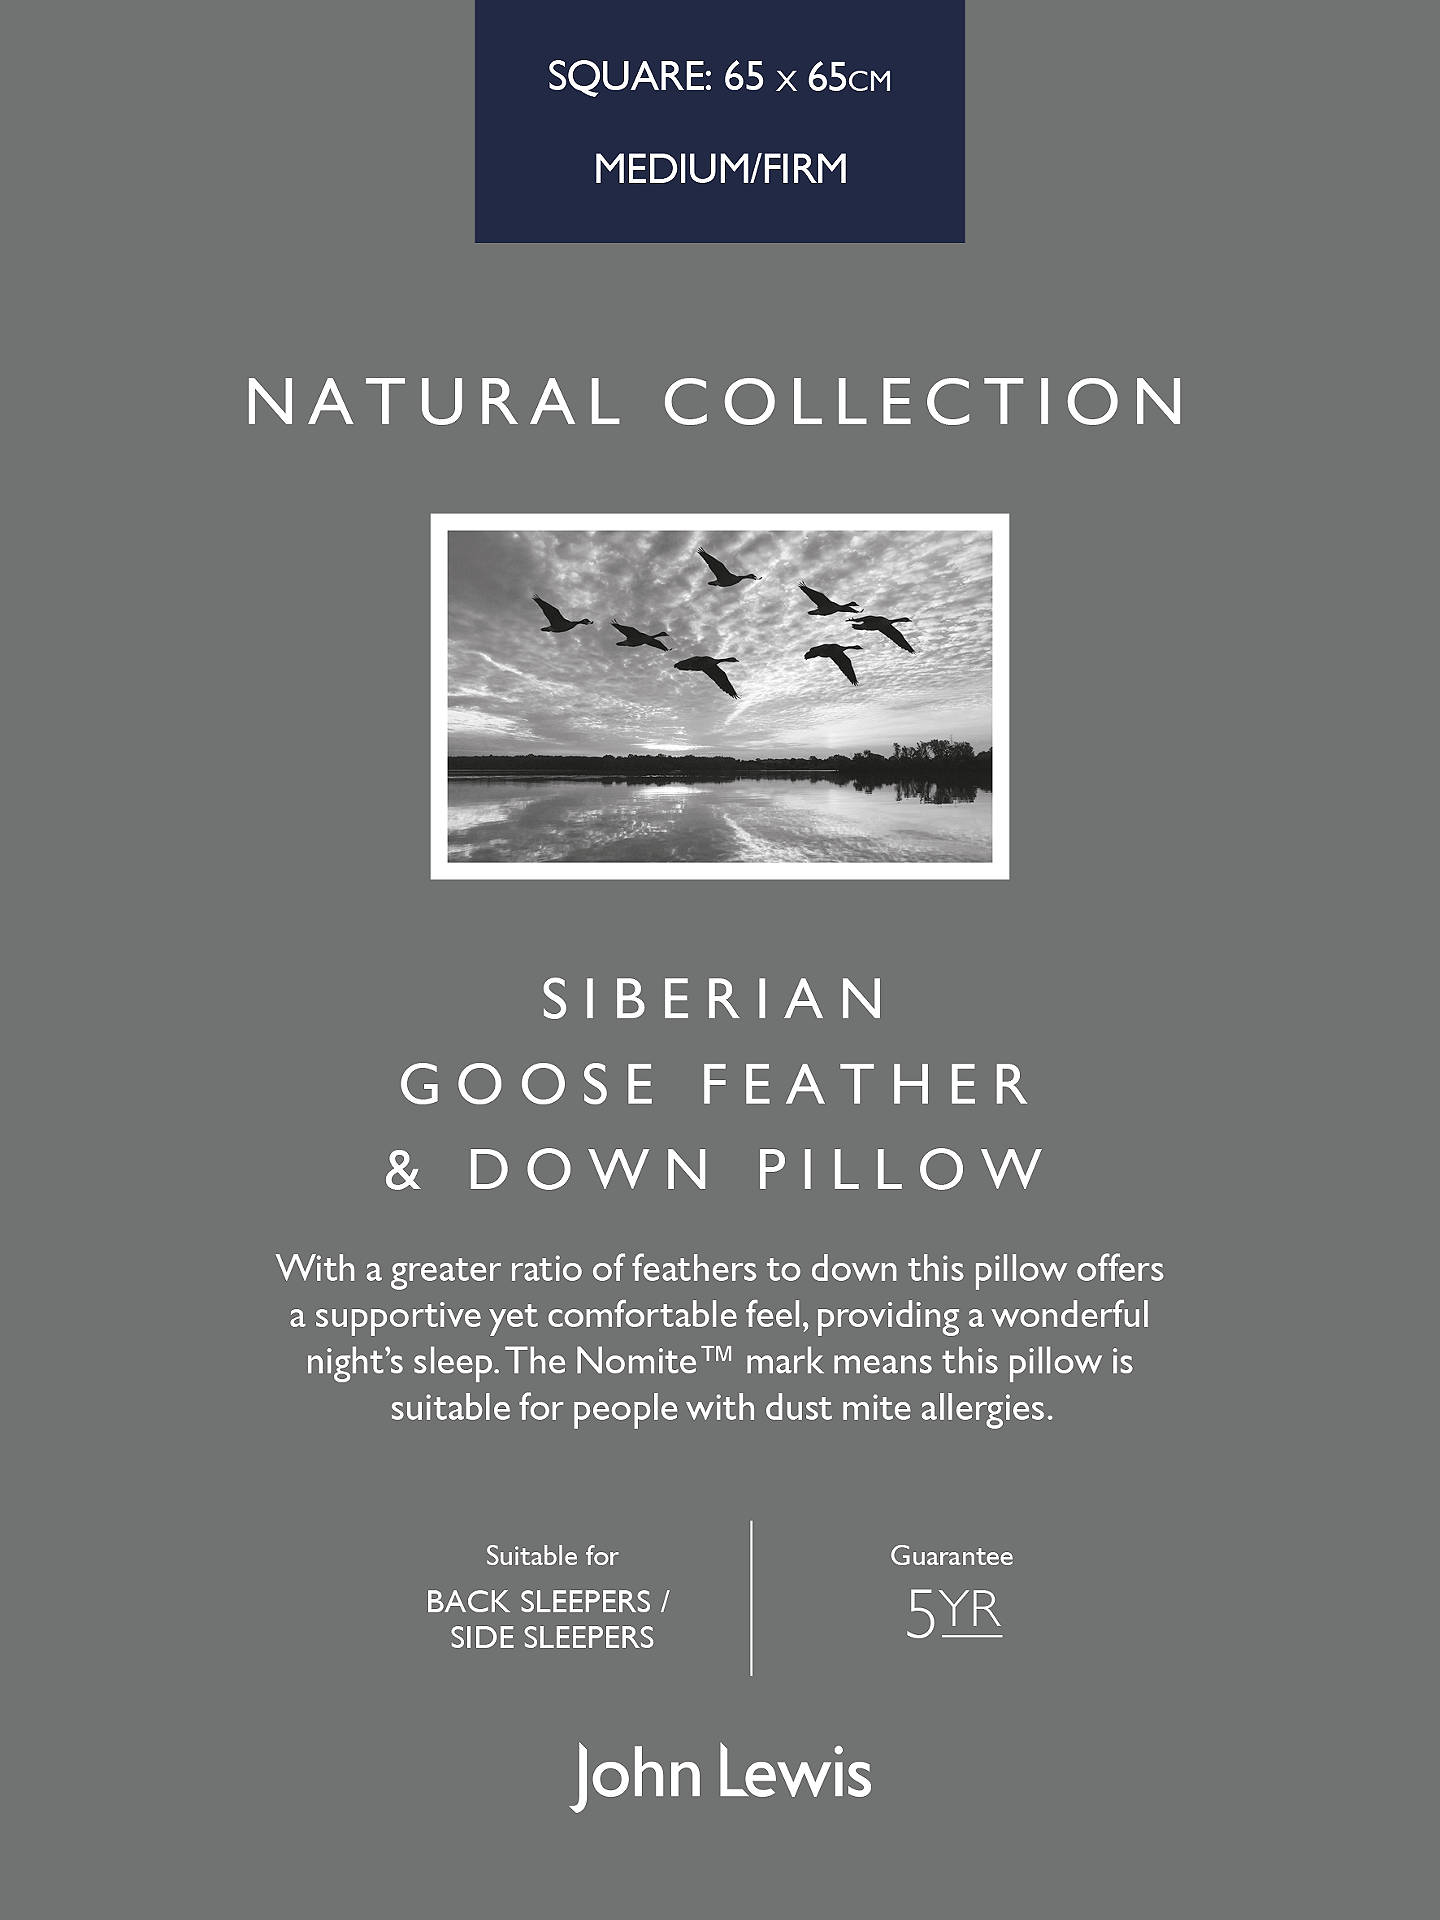 BuyJohn Lewis & Partners Natural Collection Siberian Goose Feather and Down Square Pillow, Medium/Firm Online at johnlewis.com